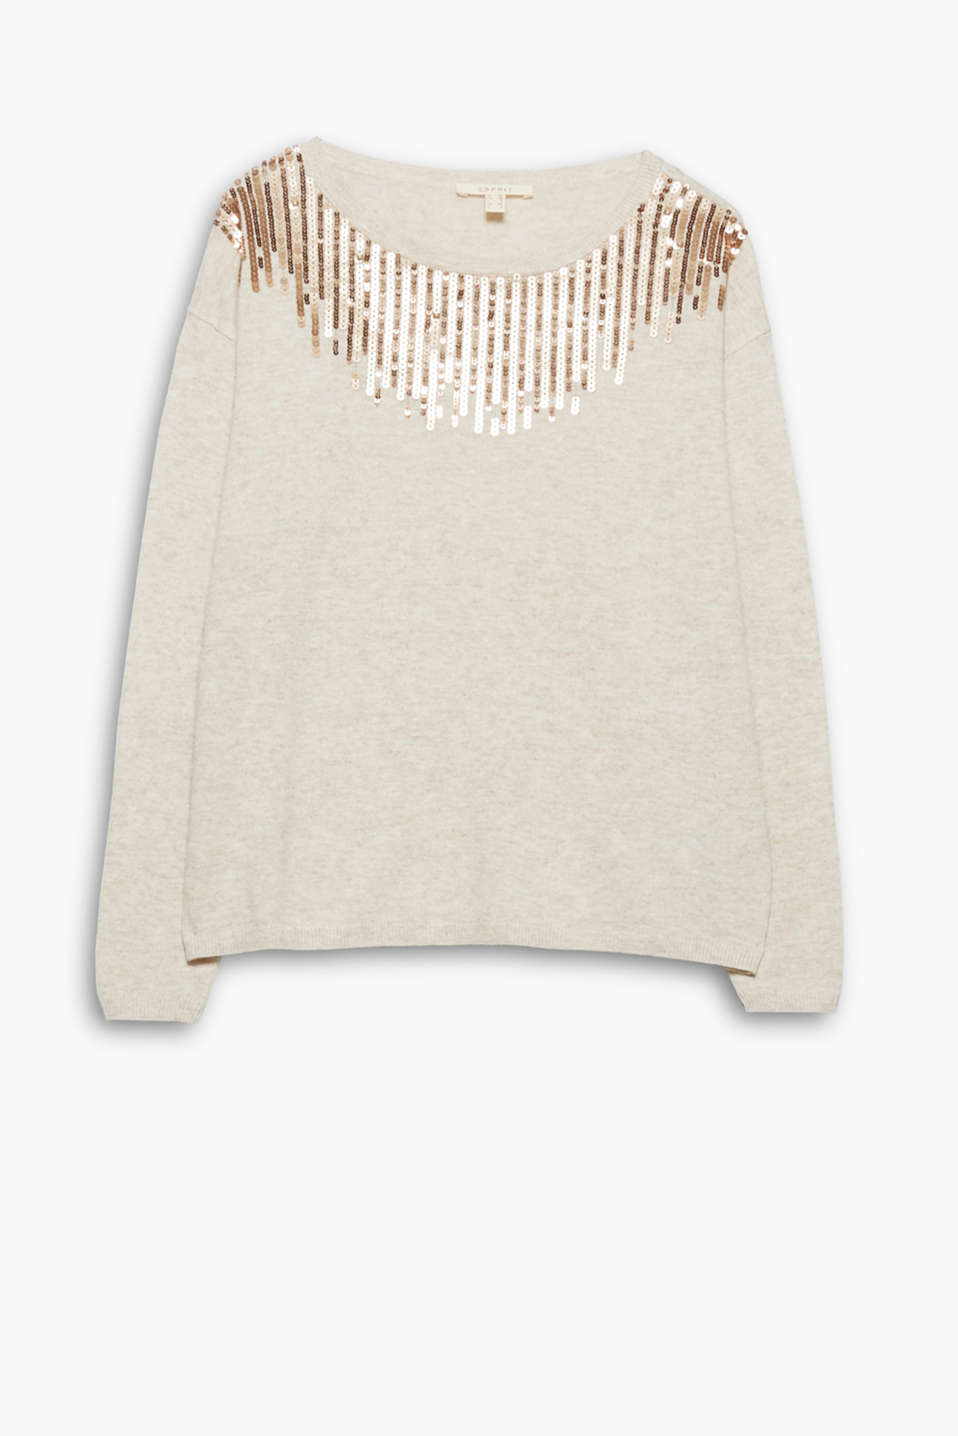 This boxy jumper in high-quality blended wool is a highlight piece thanks to the striking sparkling sequins.